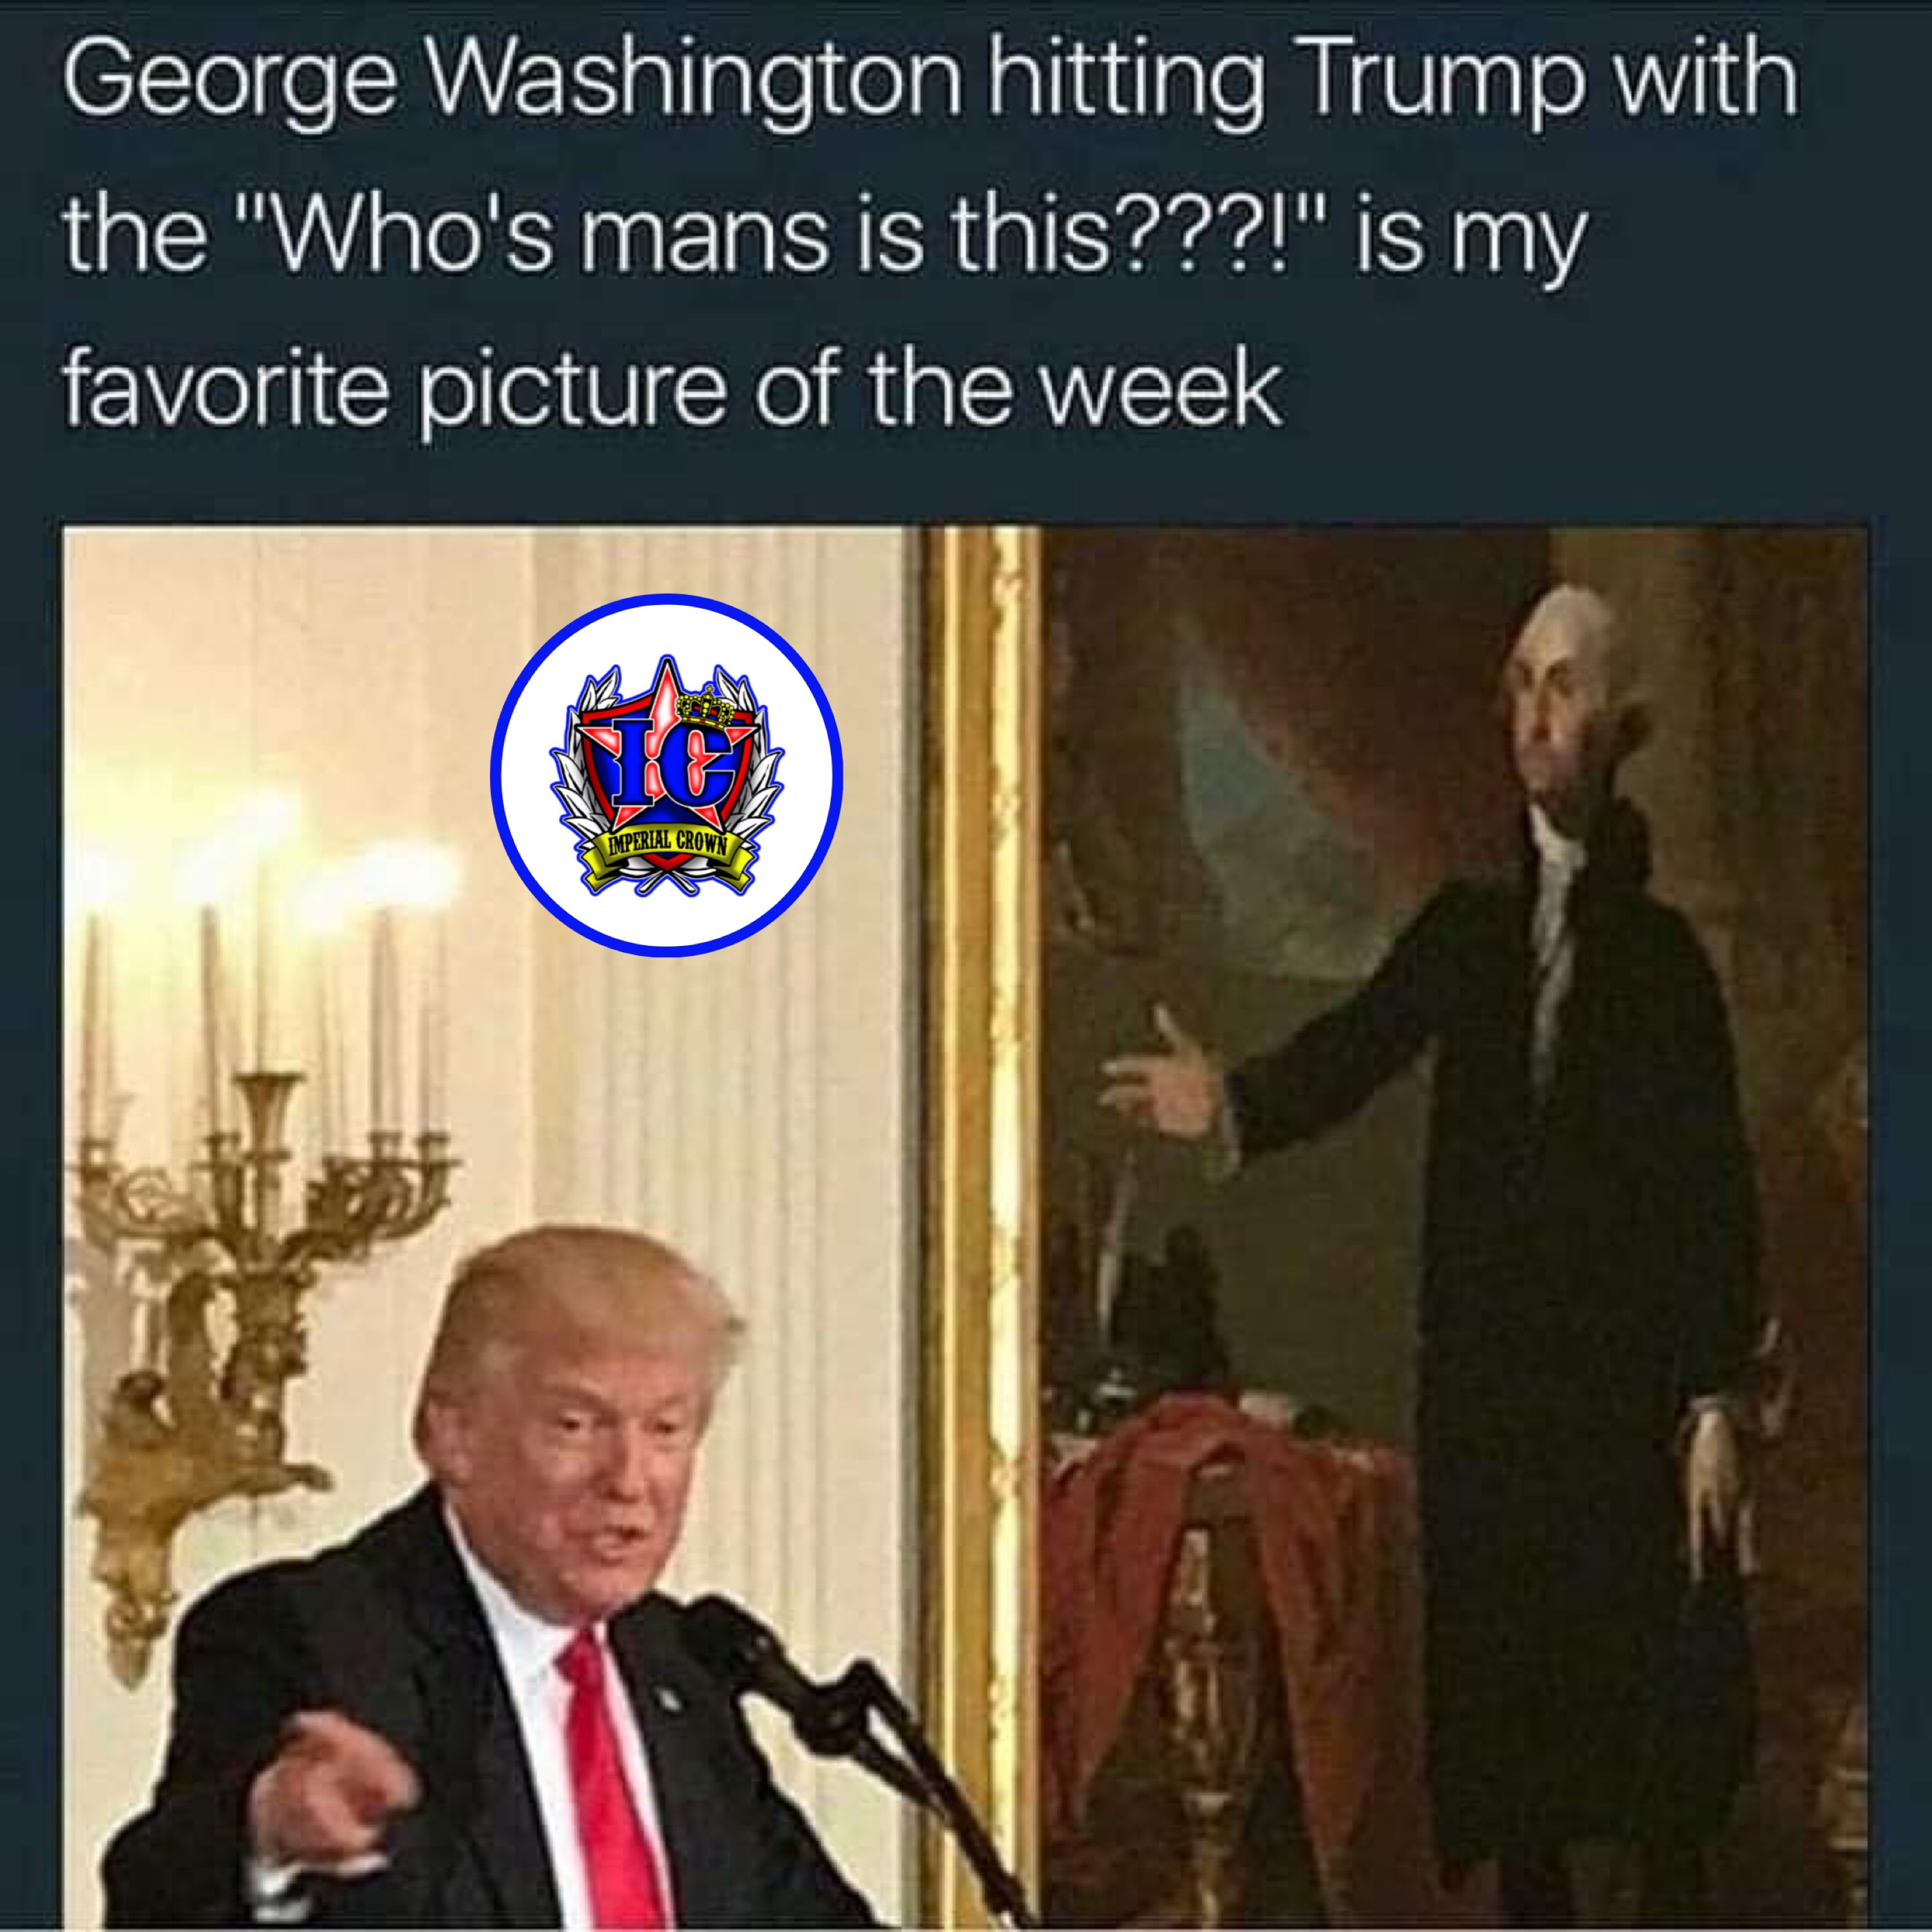 George Washington hitting Trump with the whos mans is this is my favorite picture of the week